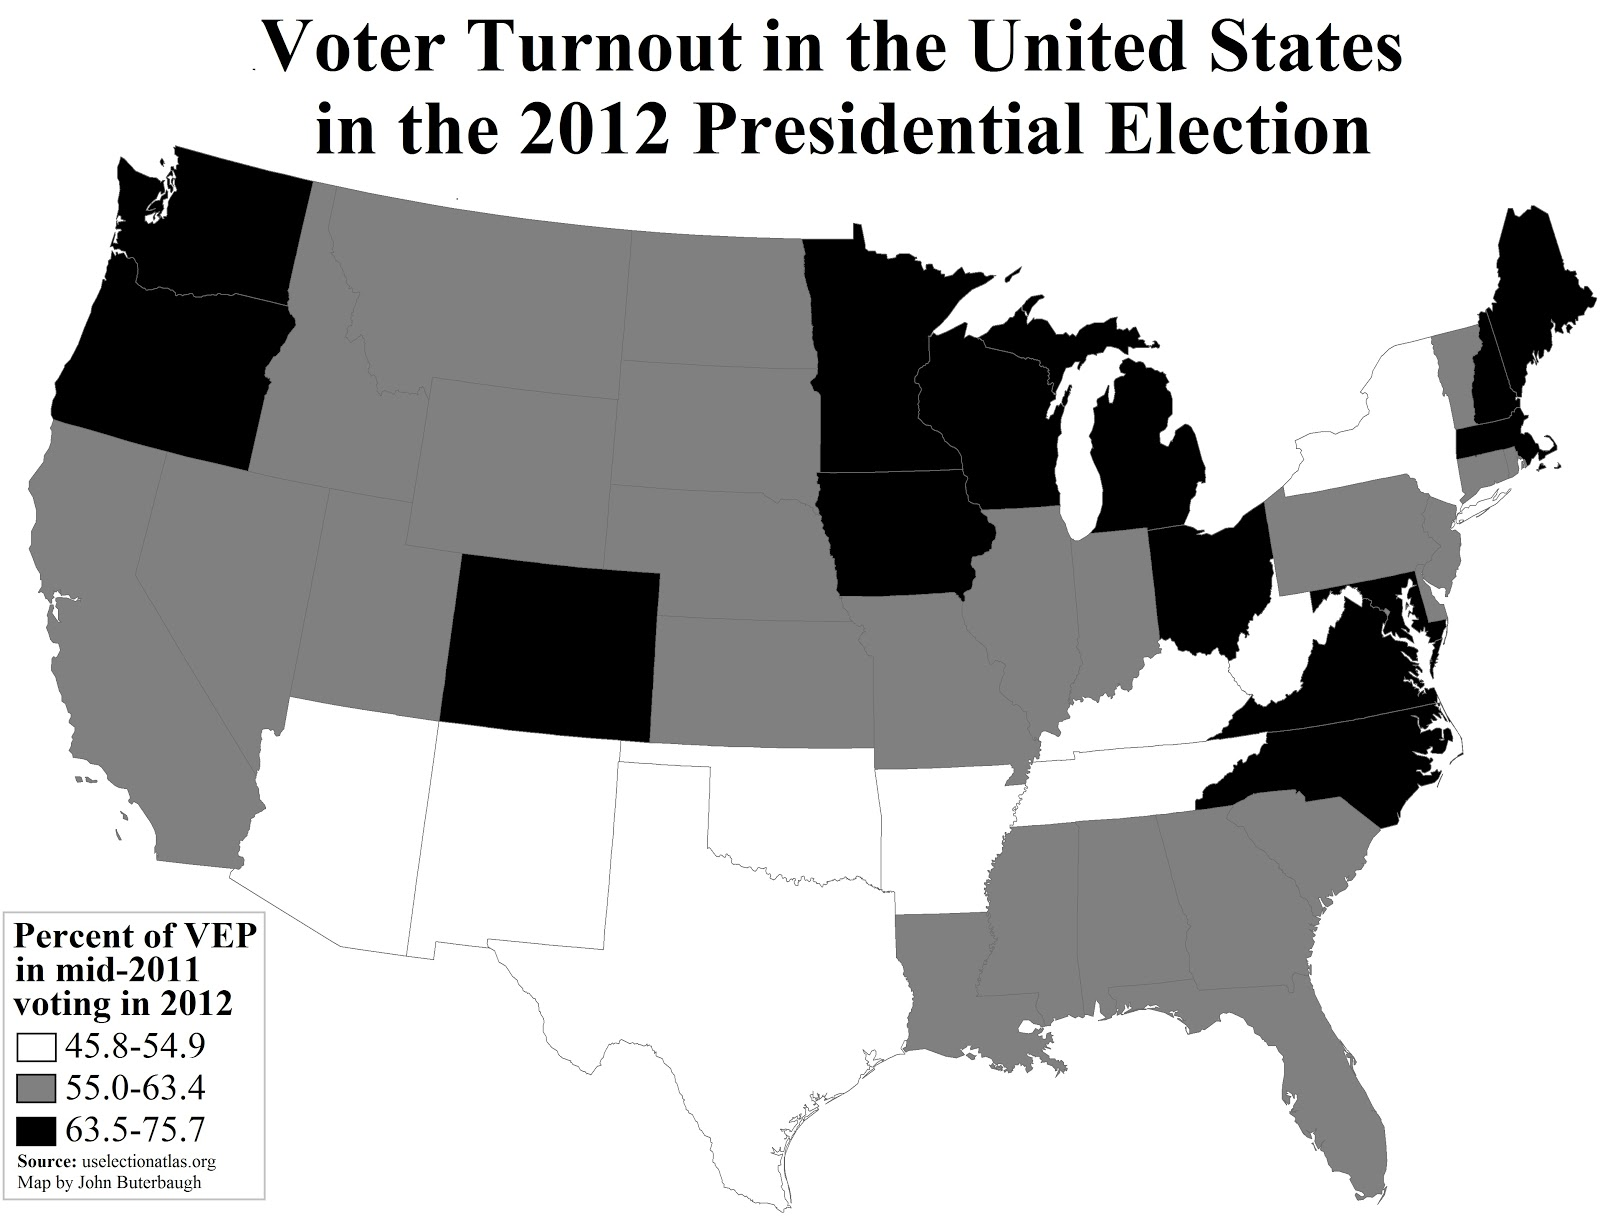 the black states are those with higher shares of voters within the mid 2011 voting eligible population of the 14 black states seven were considered